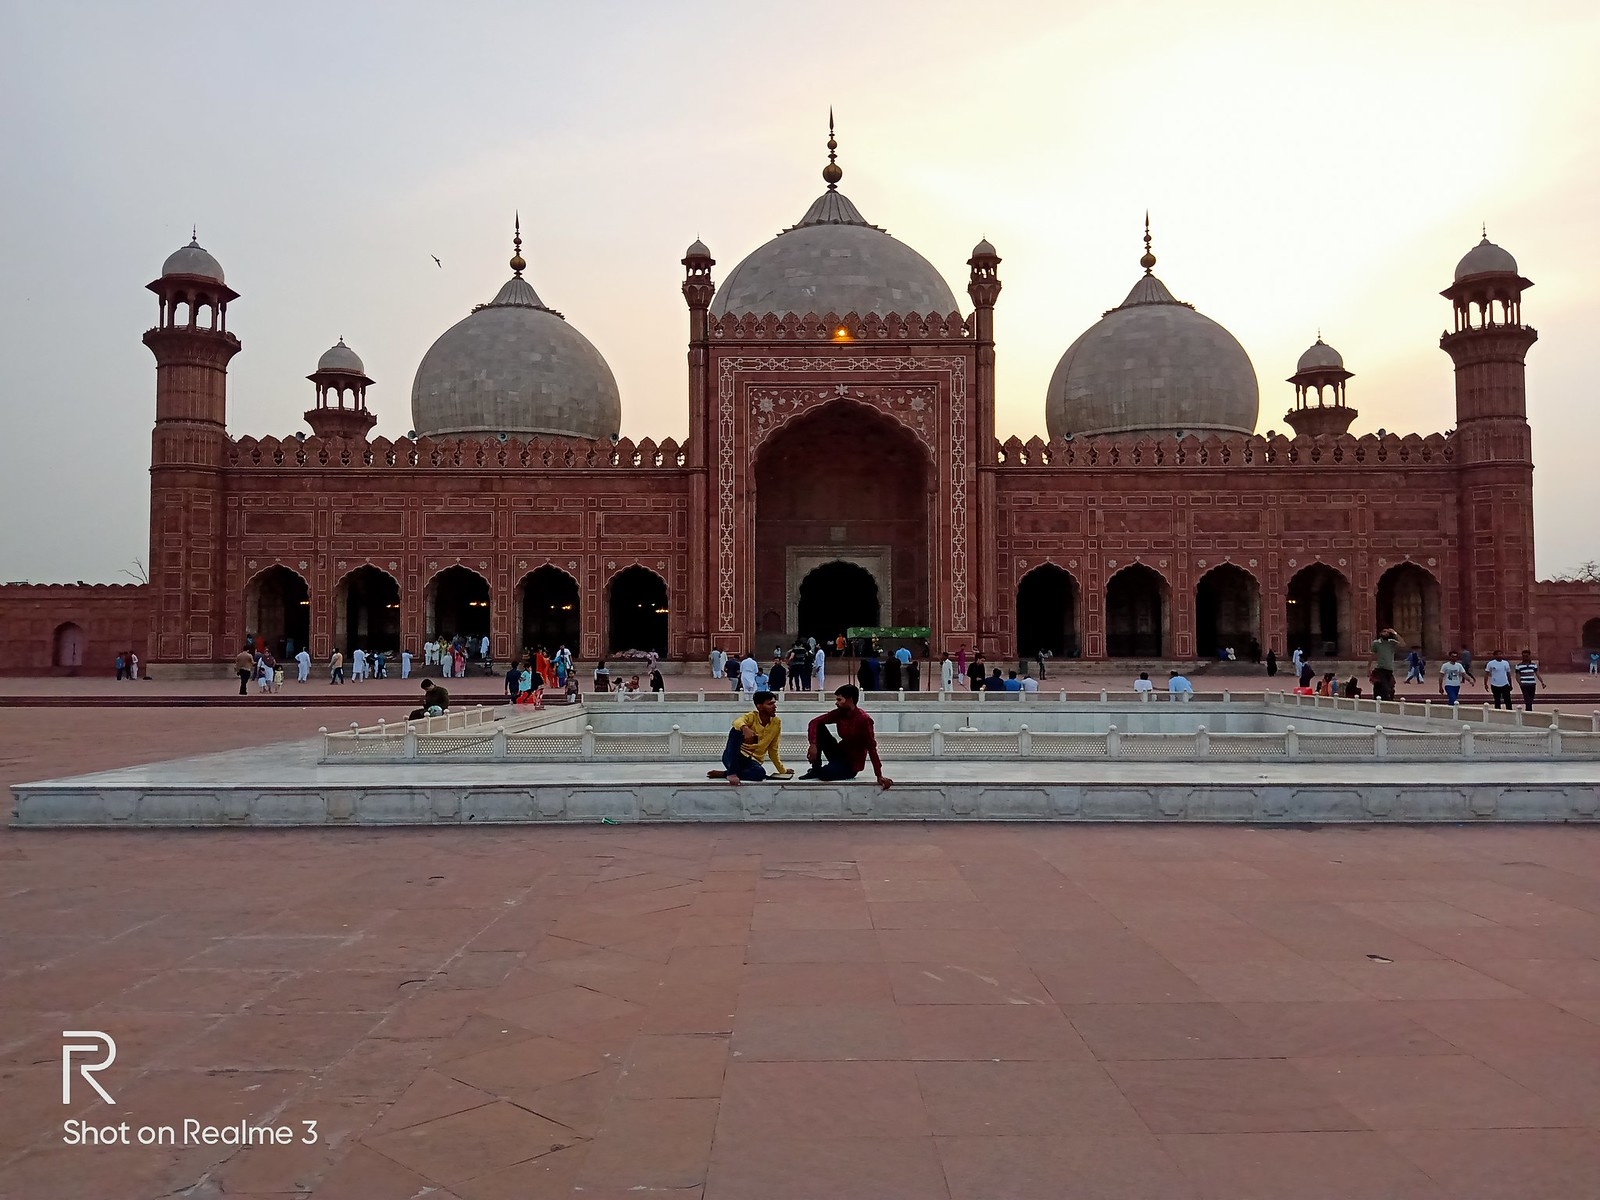 Badshahi Mosque Picture with Chroma Mode on Realme 3